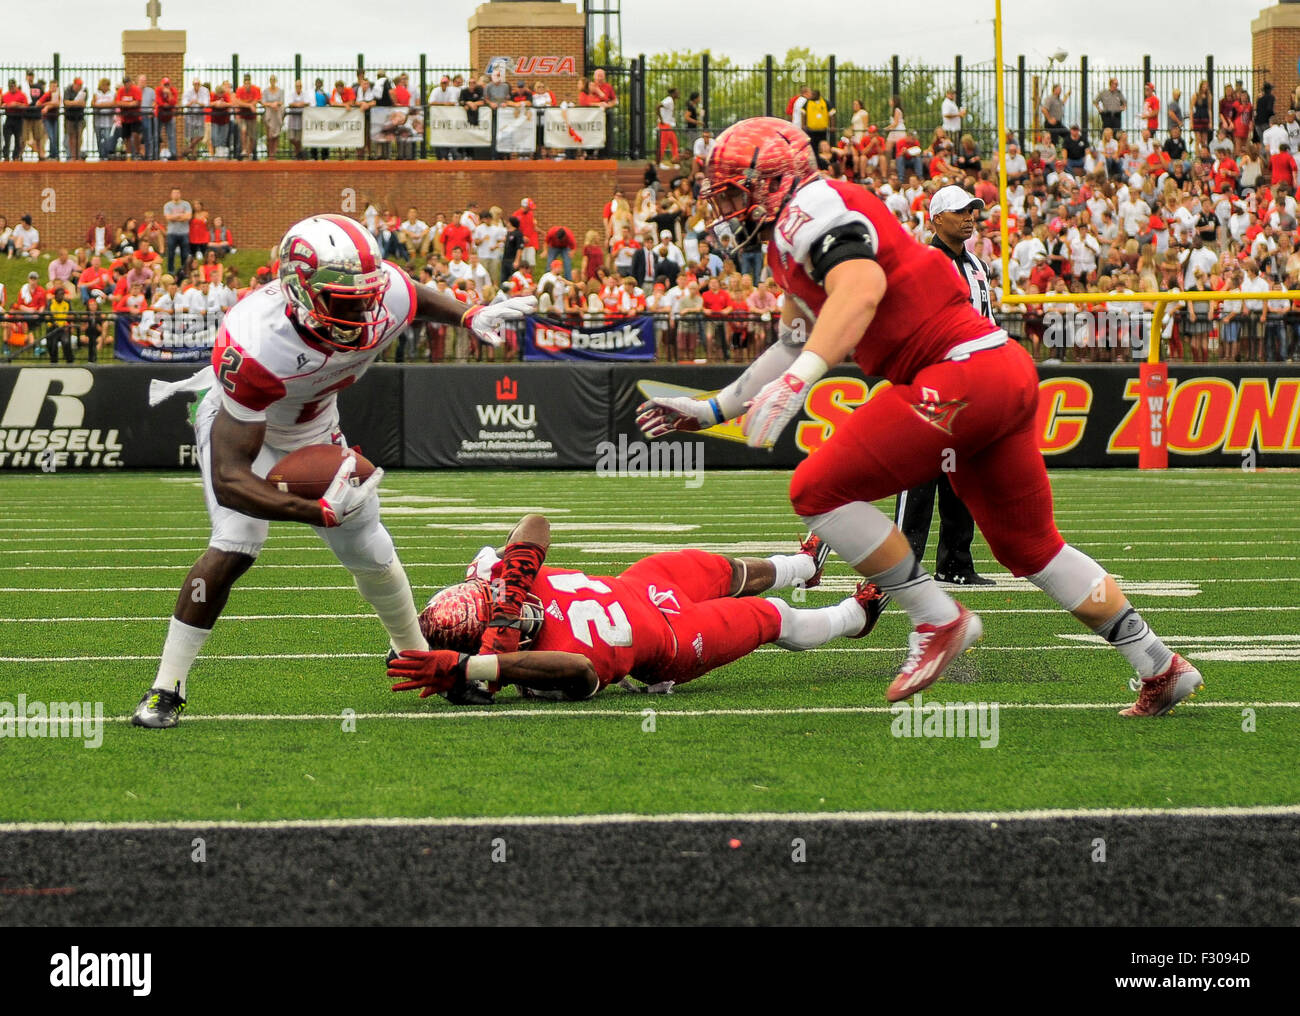 September 26, 2015 Western Kentucky Hilltoppers wide receiver Taywan Taylor (2) escapes the tackle of Miami (Oh) - Stock Image